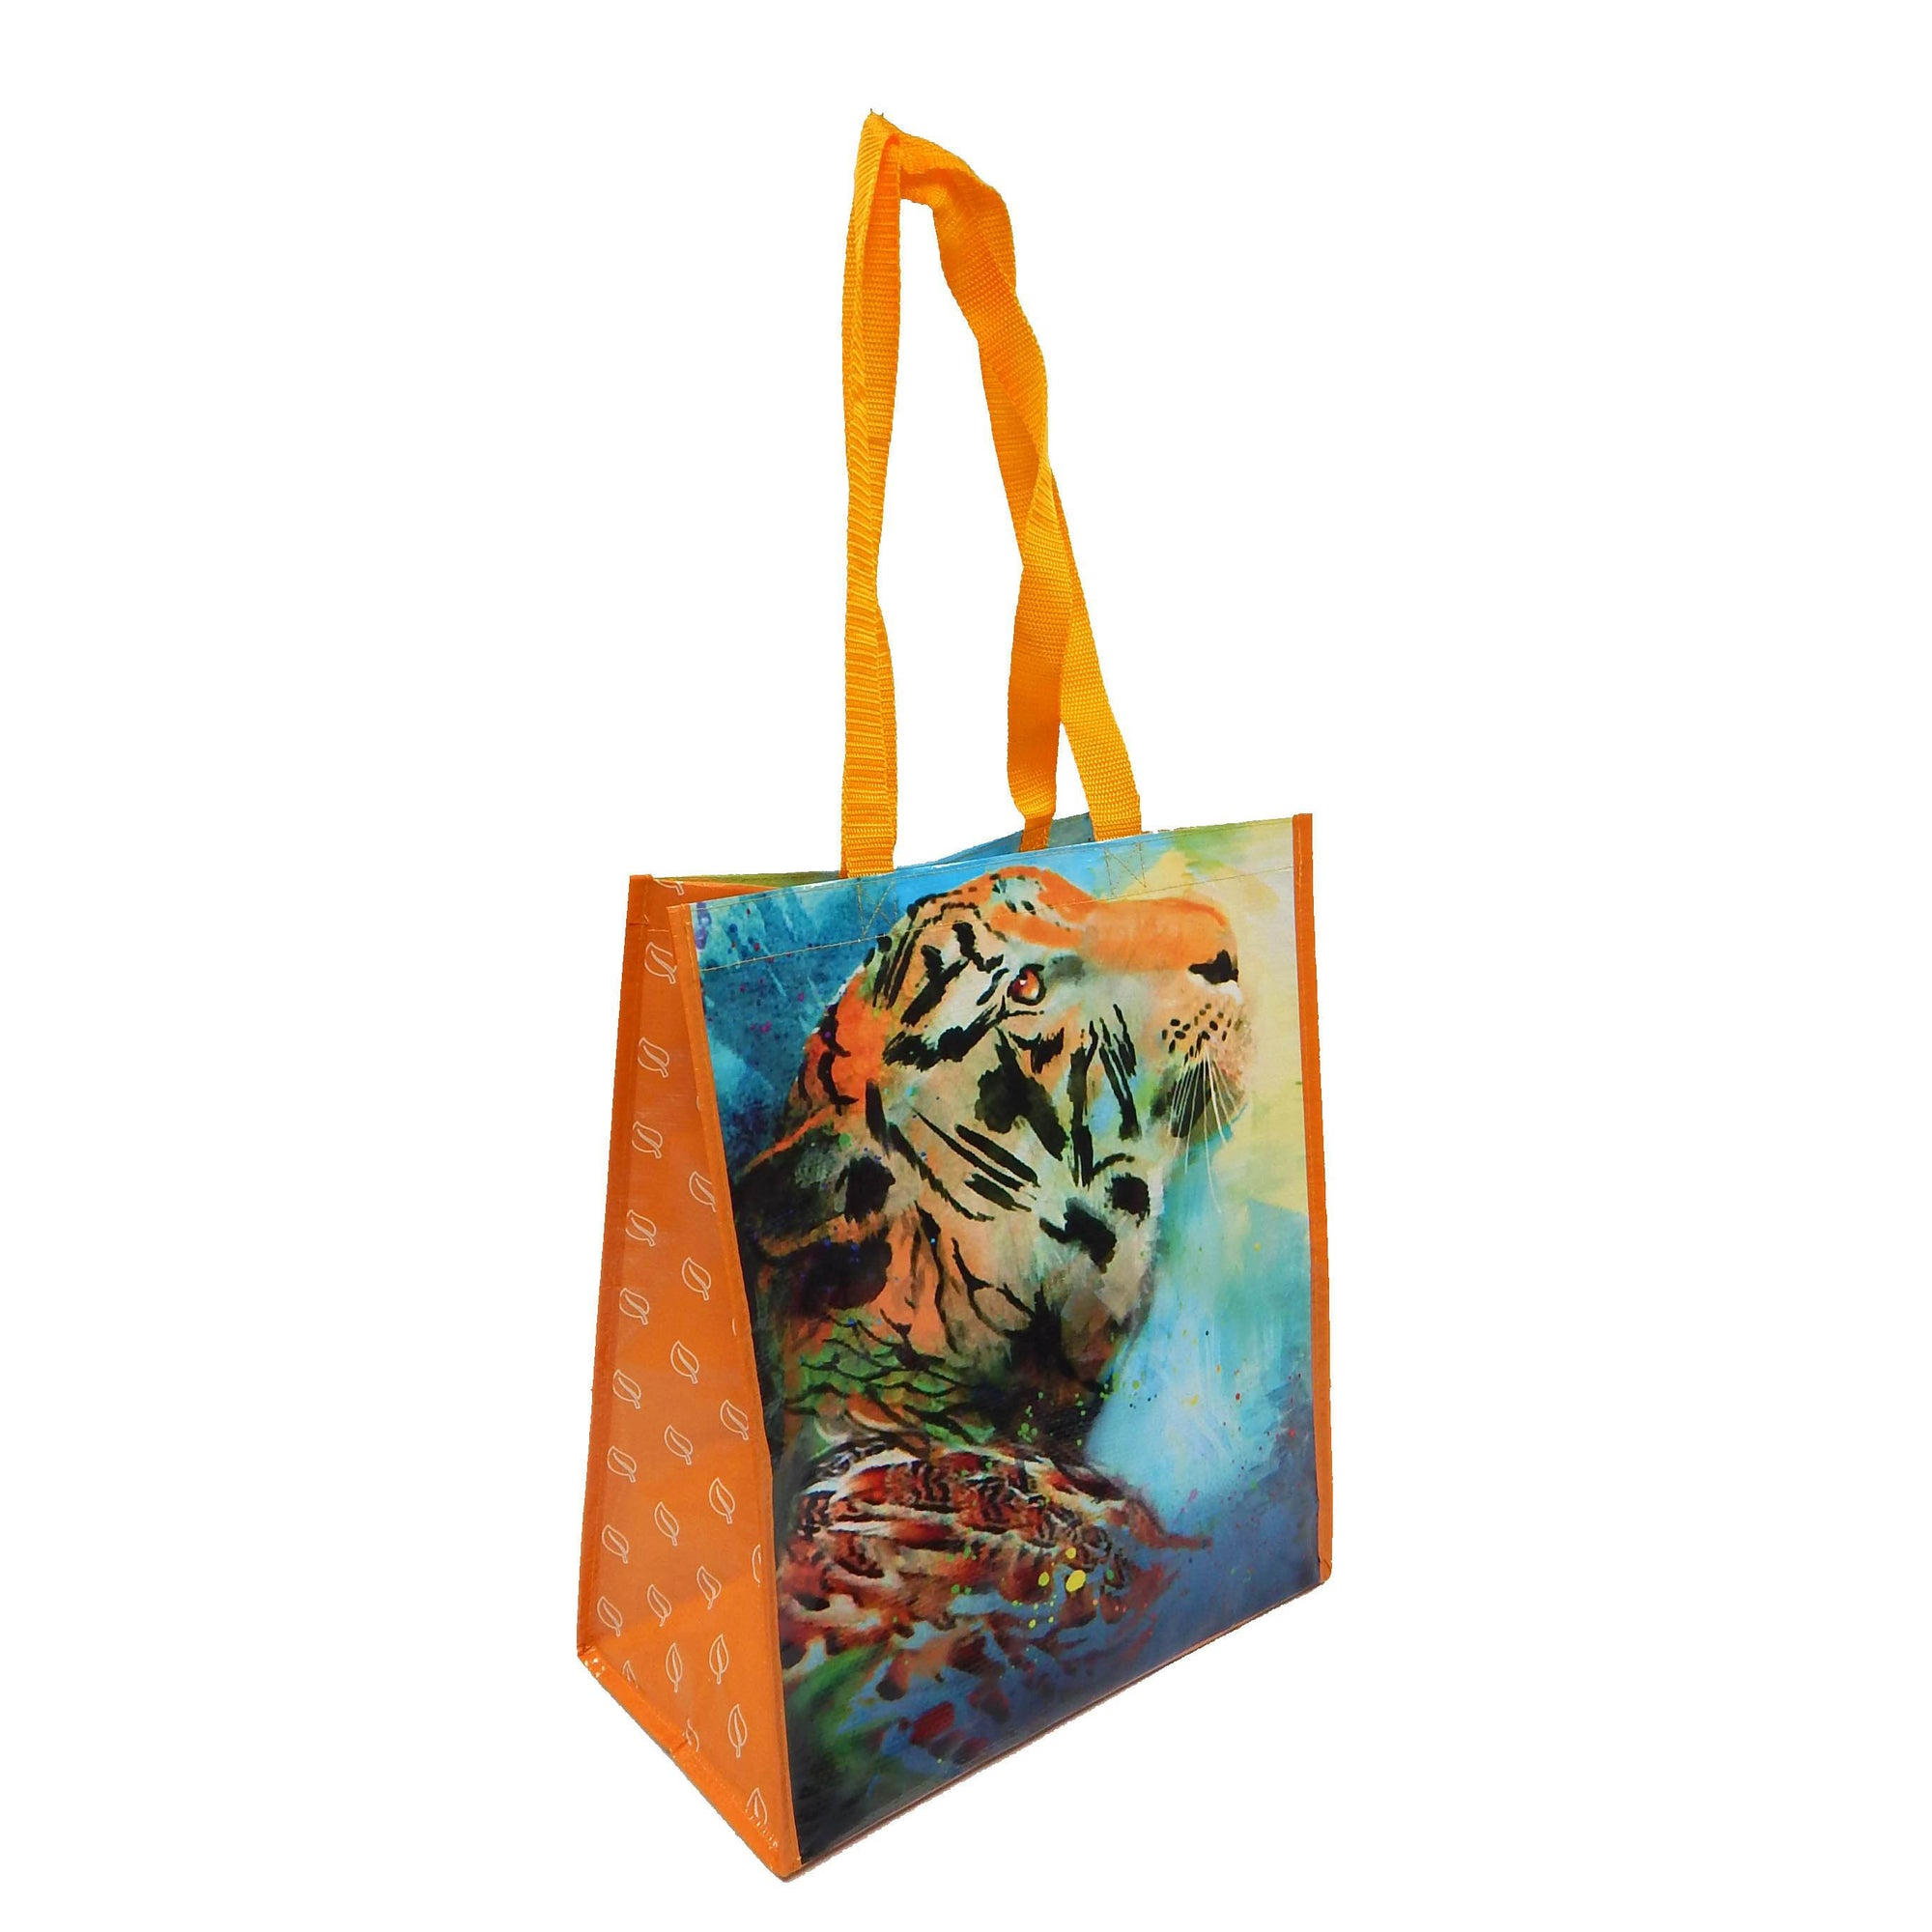 Tiger Recycled Tote Bag